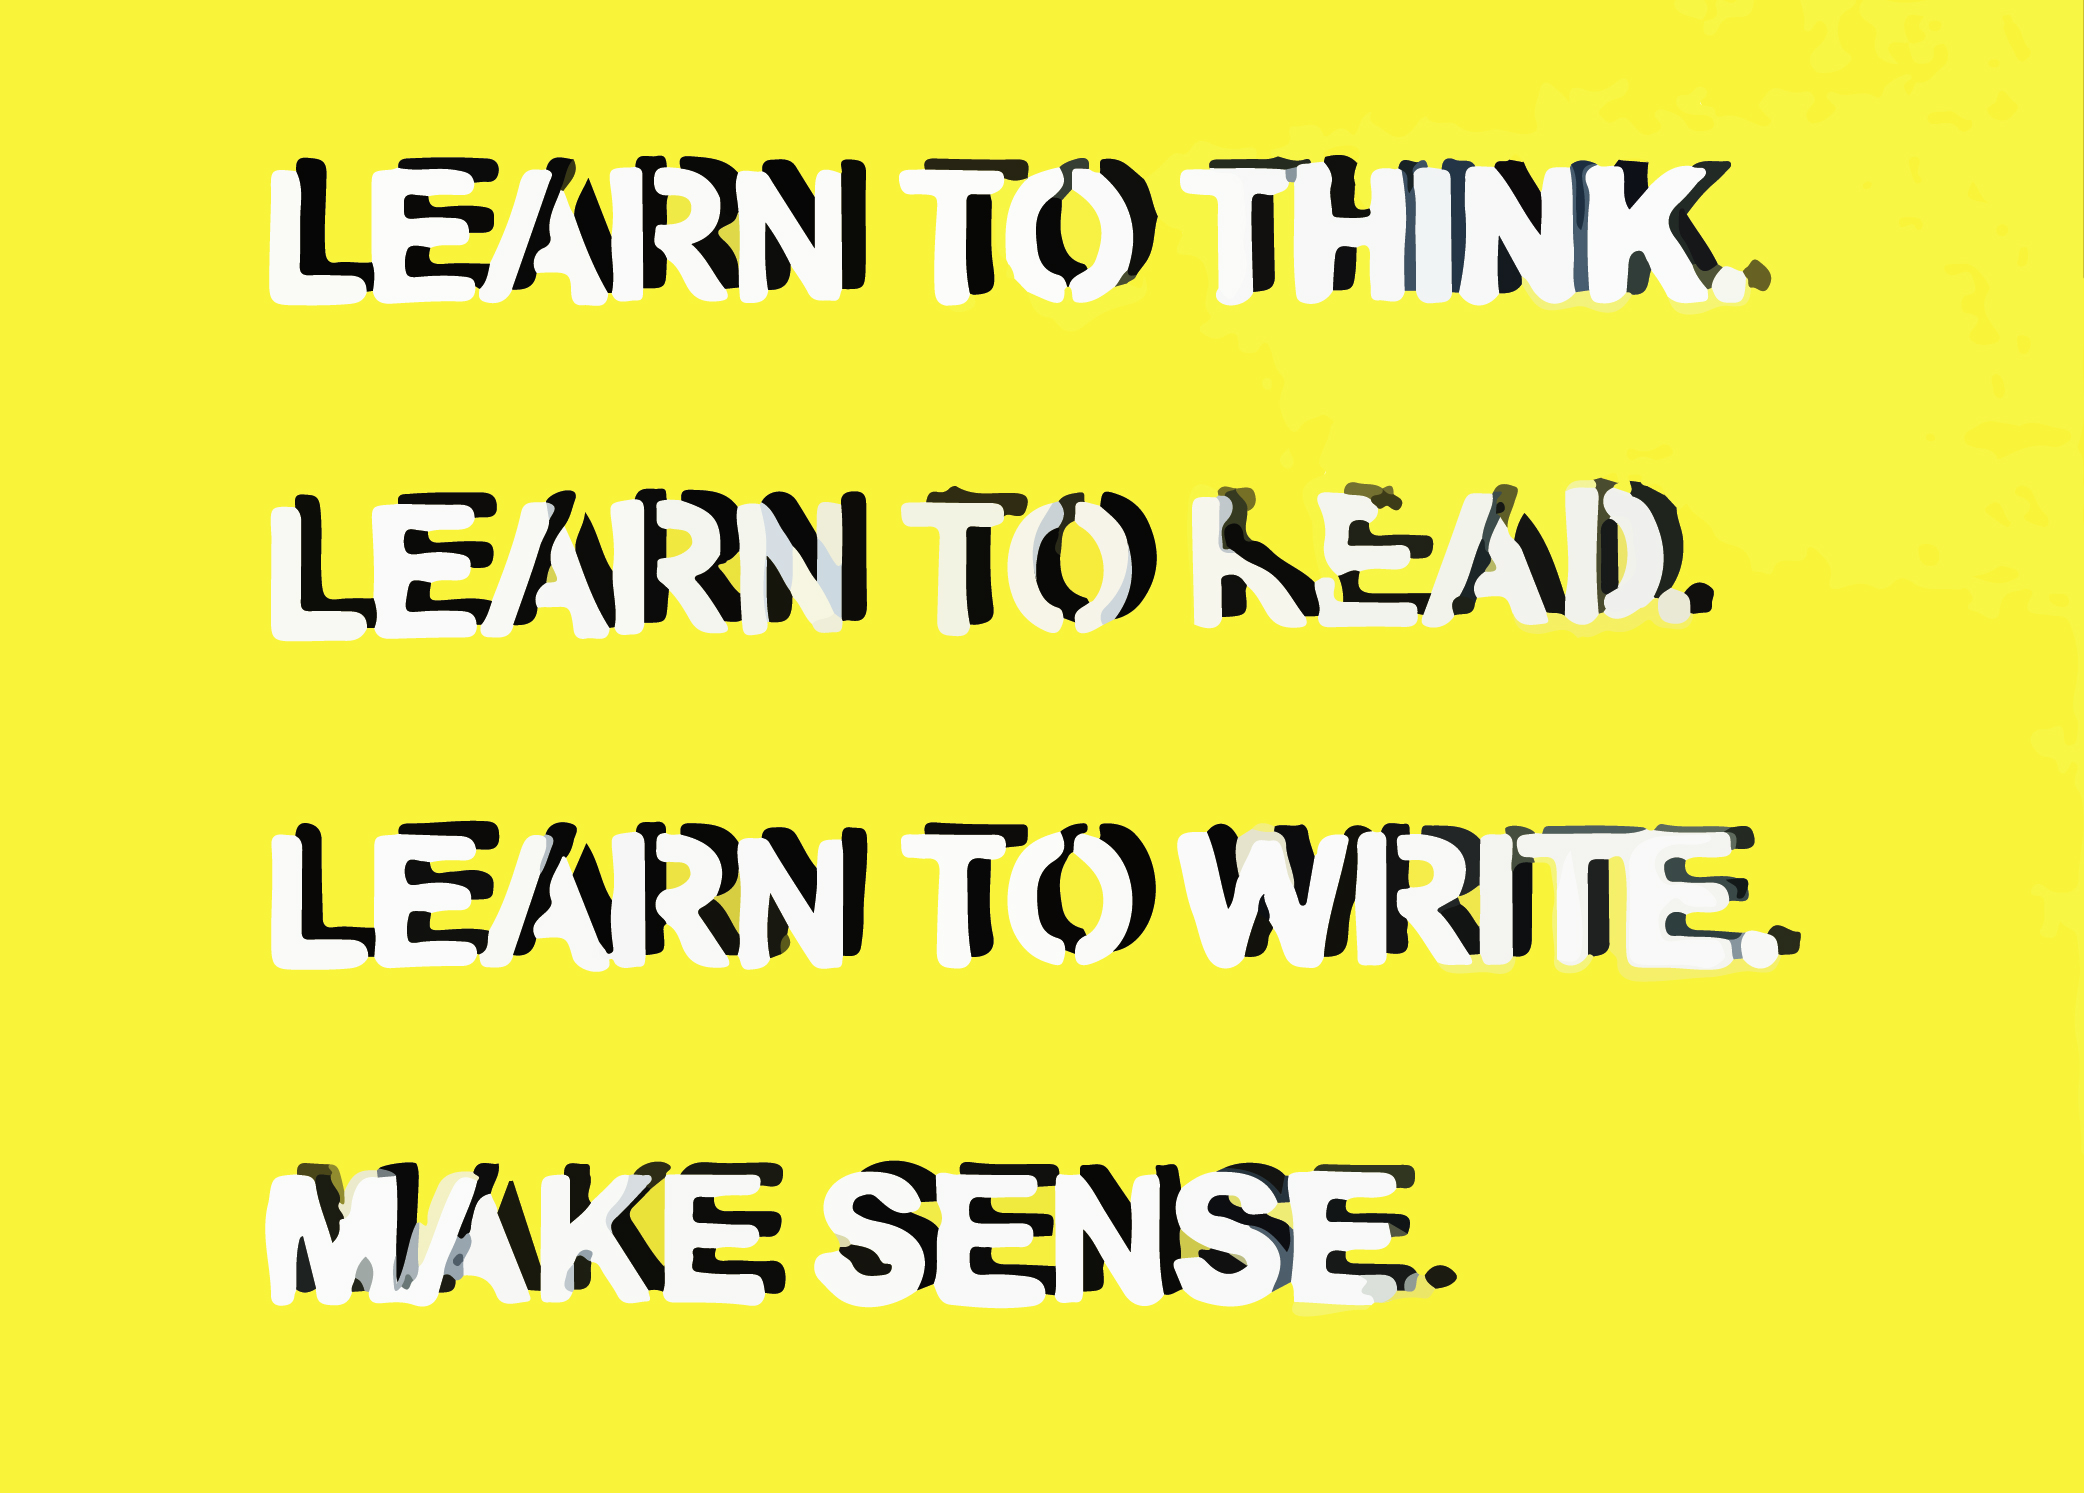 John Baldessari: Learn to think. Learn to Read. Learn to write. Make sense. 1966–68